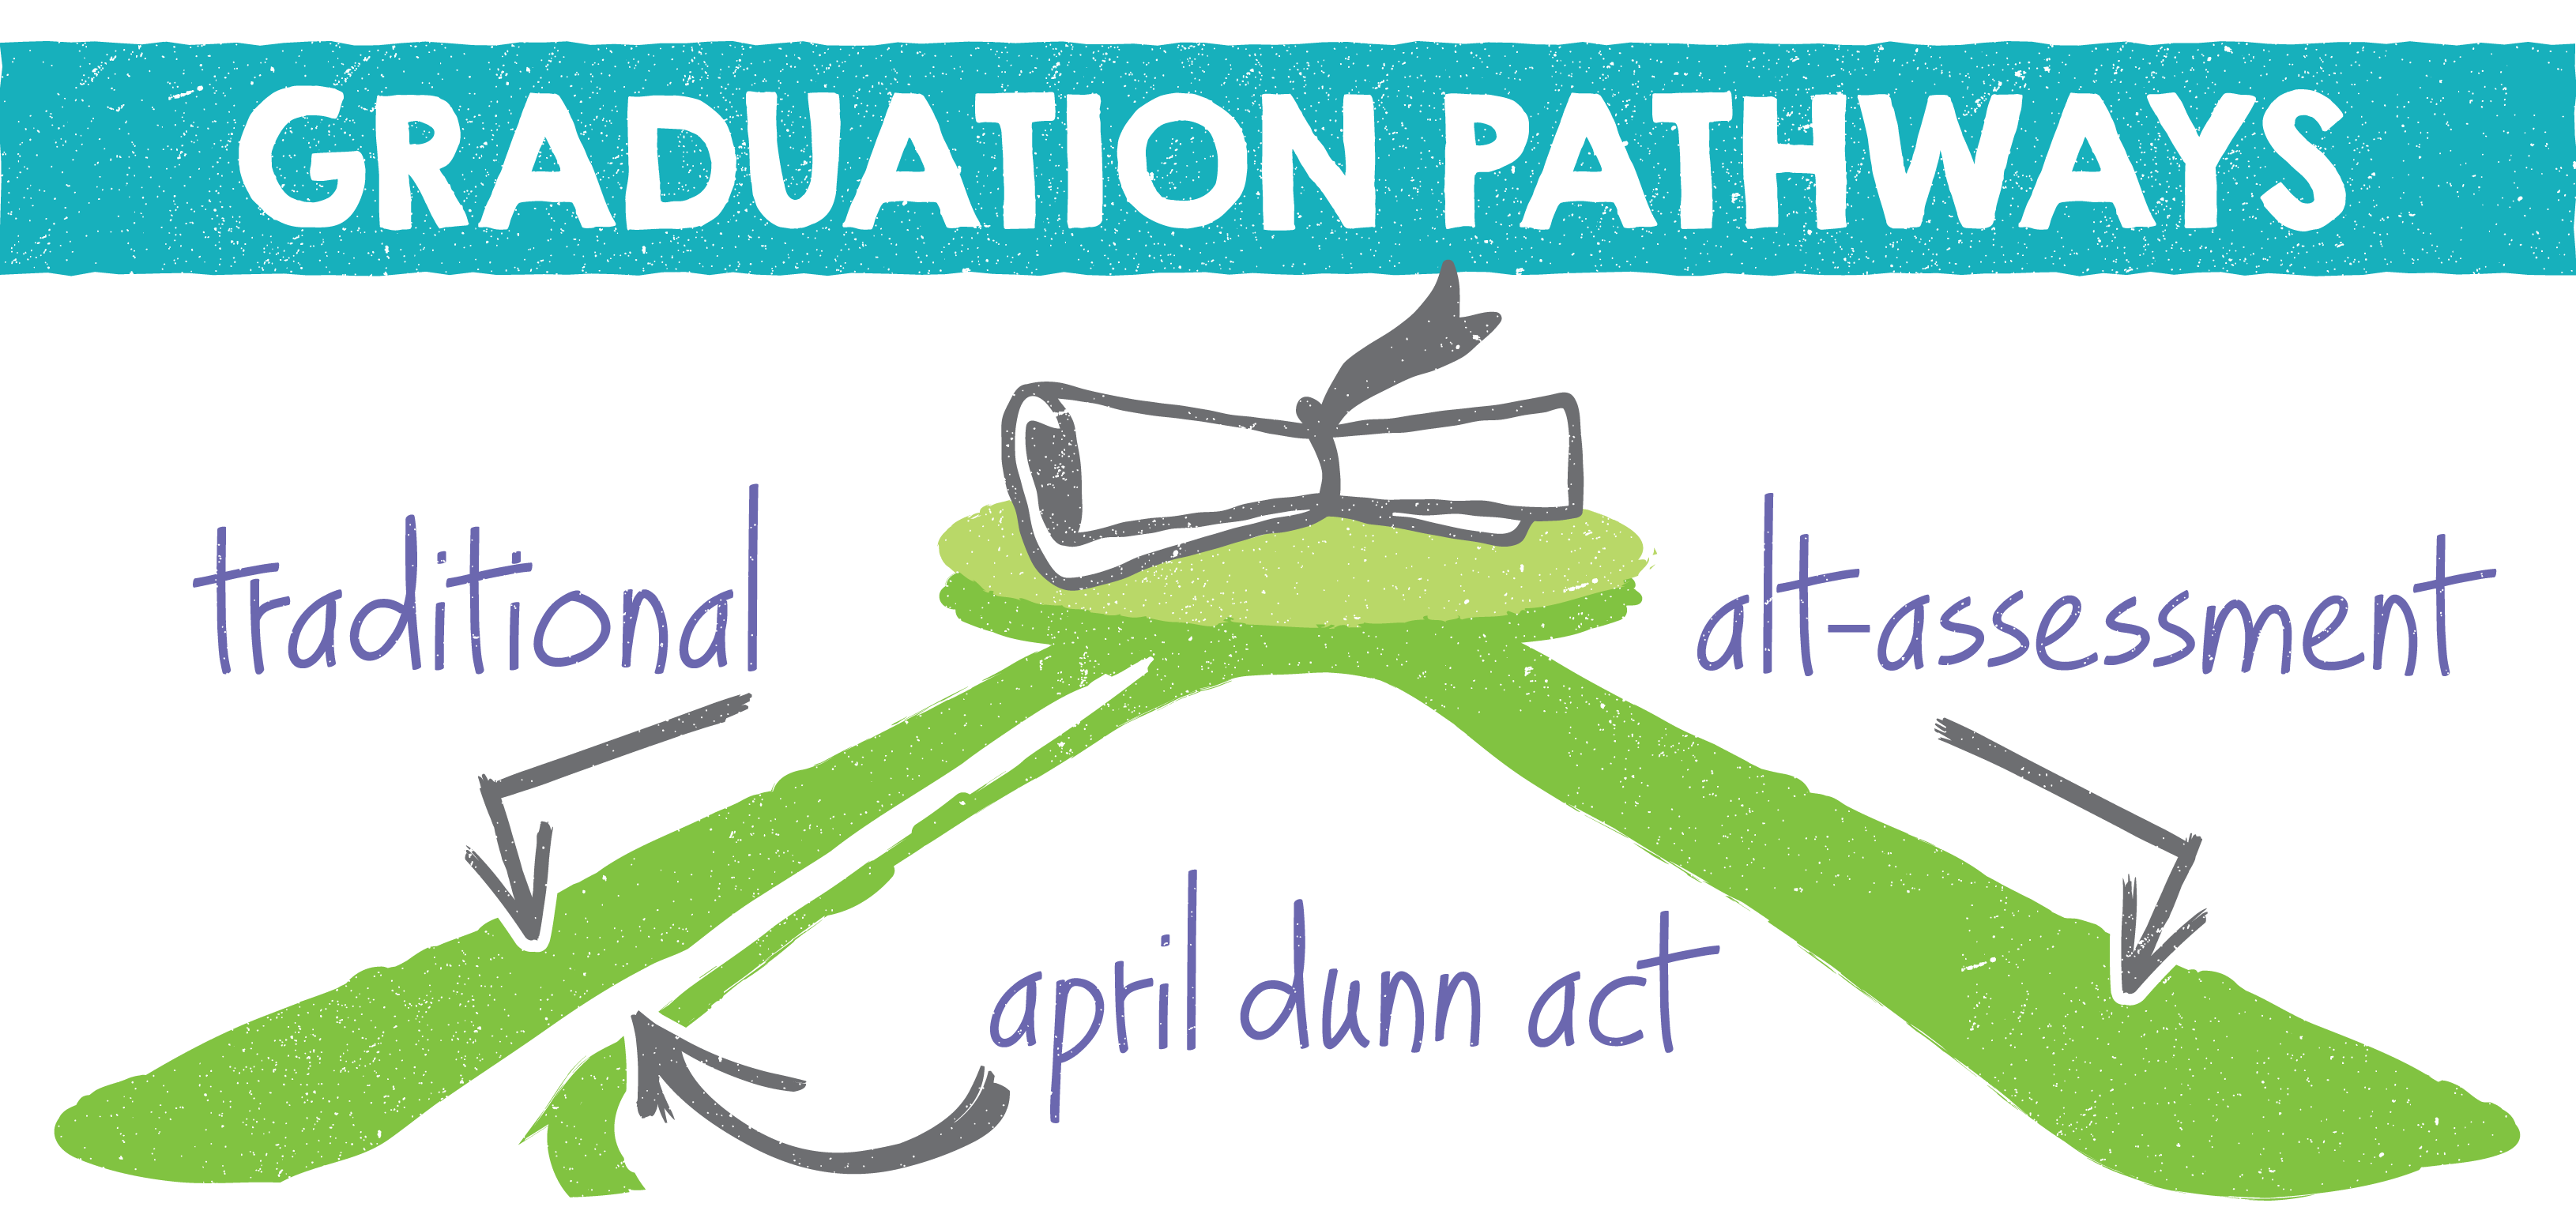 Graduation Pathways - Traditional - 833 Alternative - ALT-Assessment